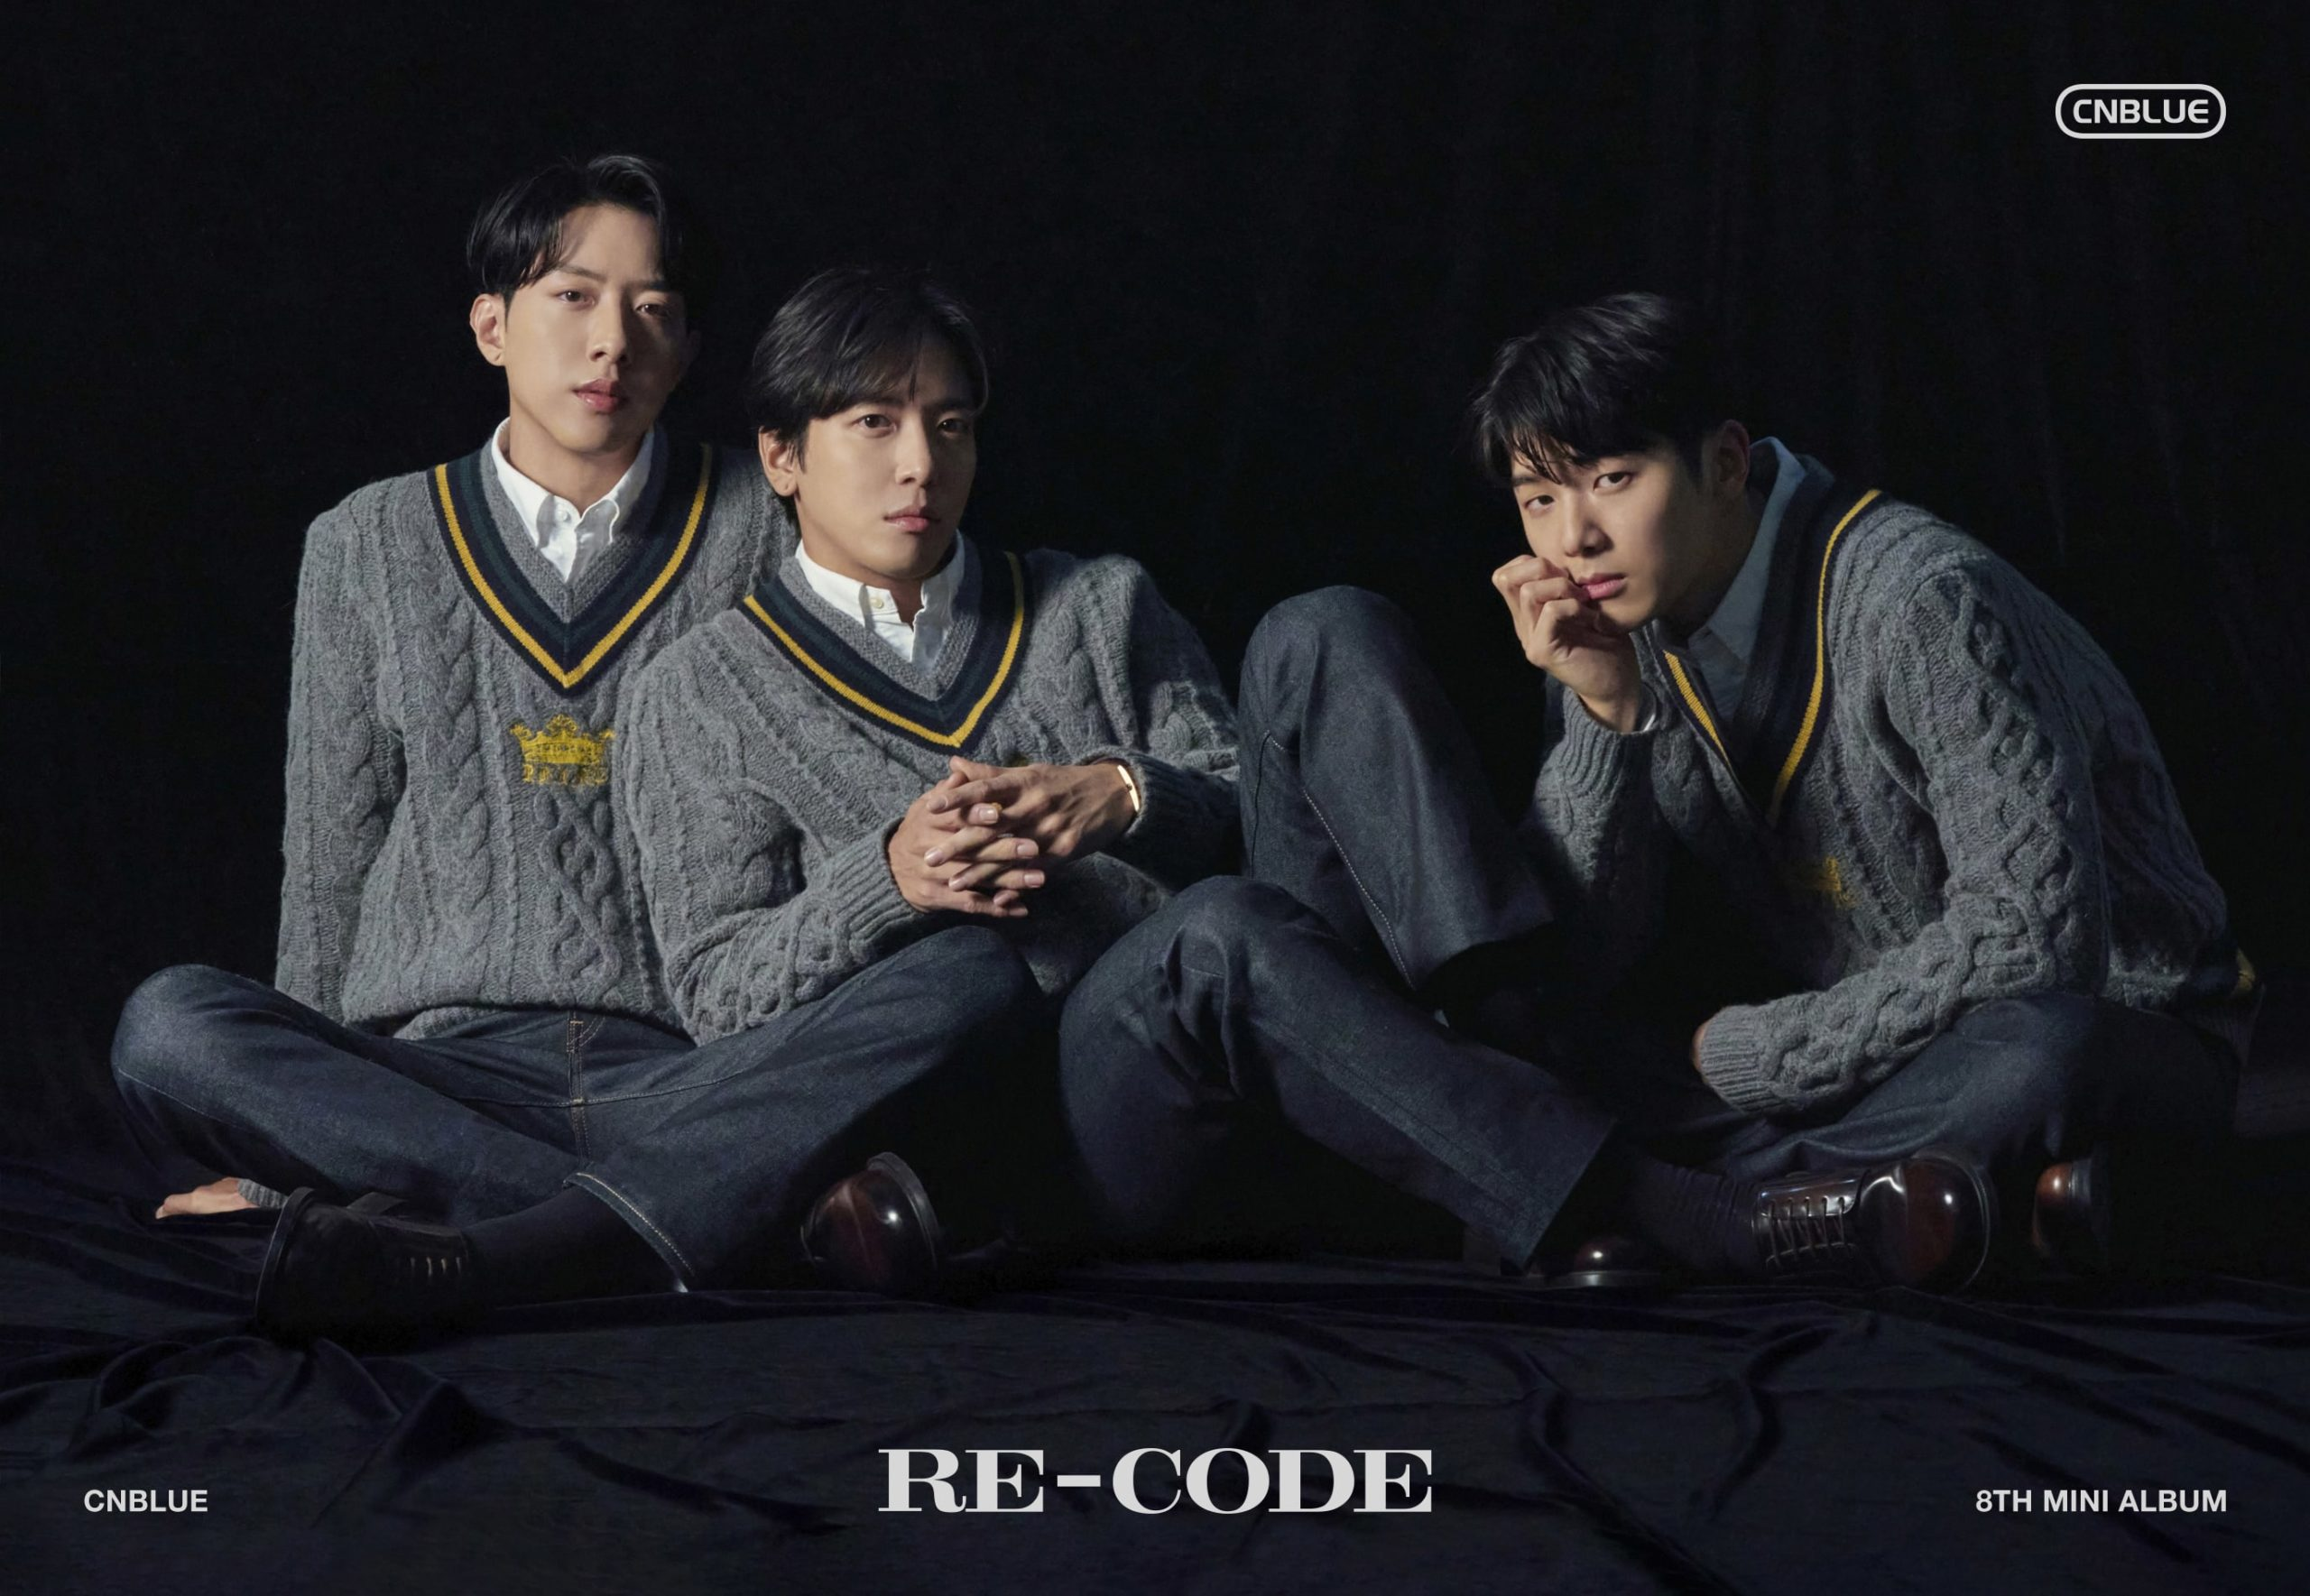 cnblue re-code